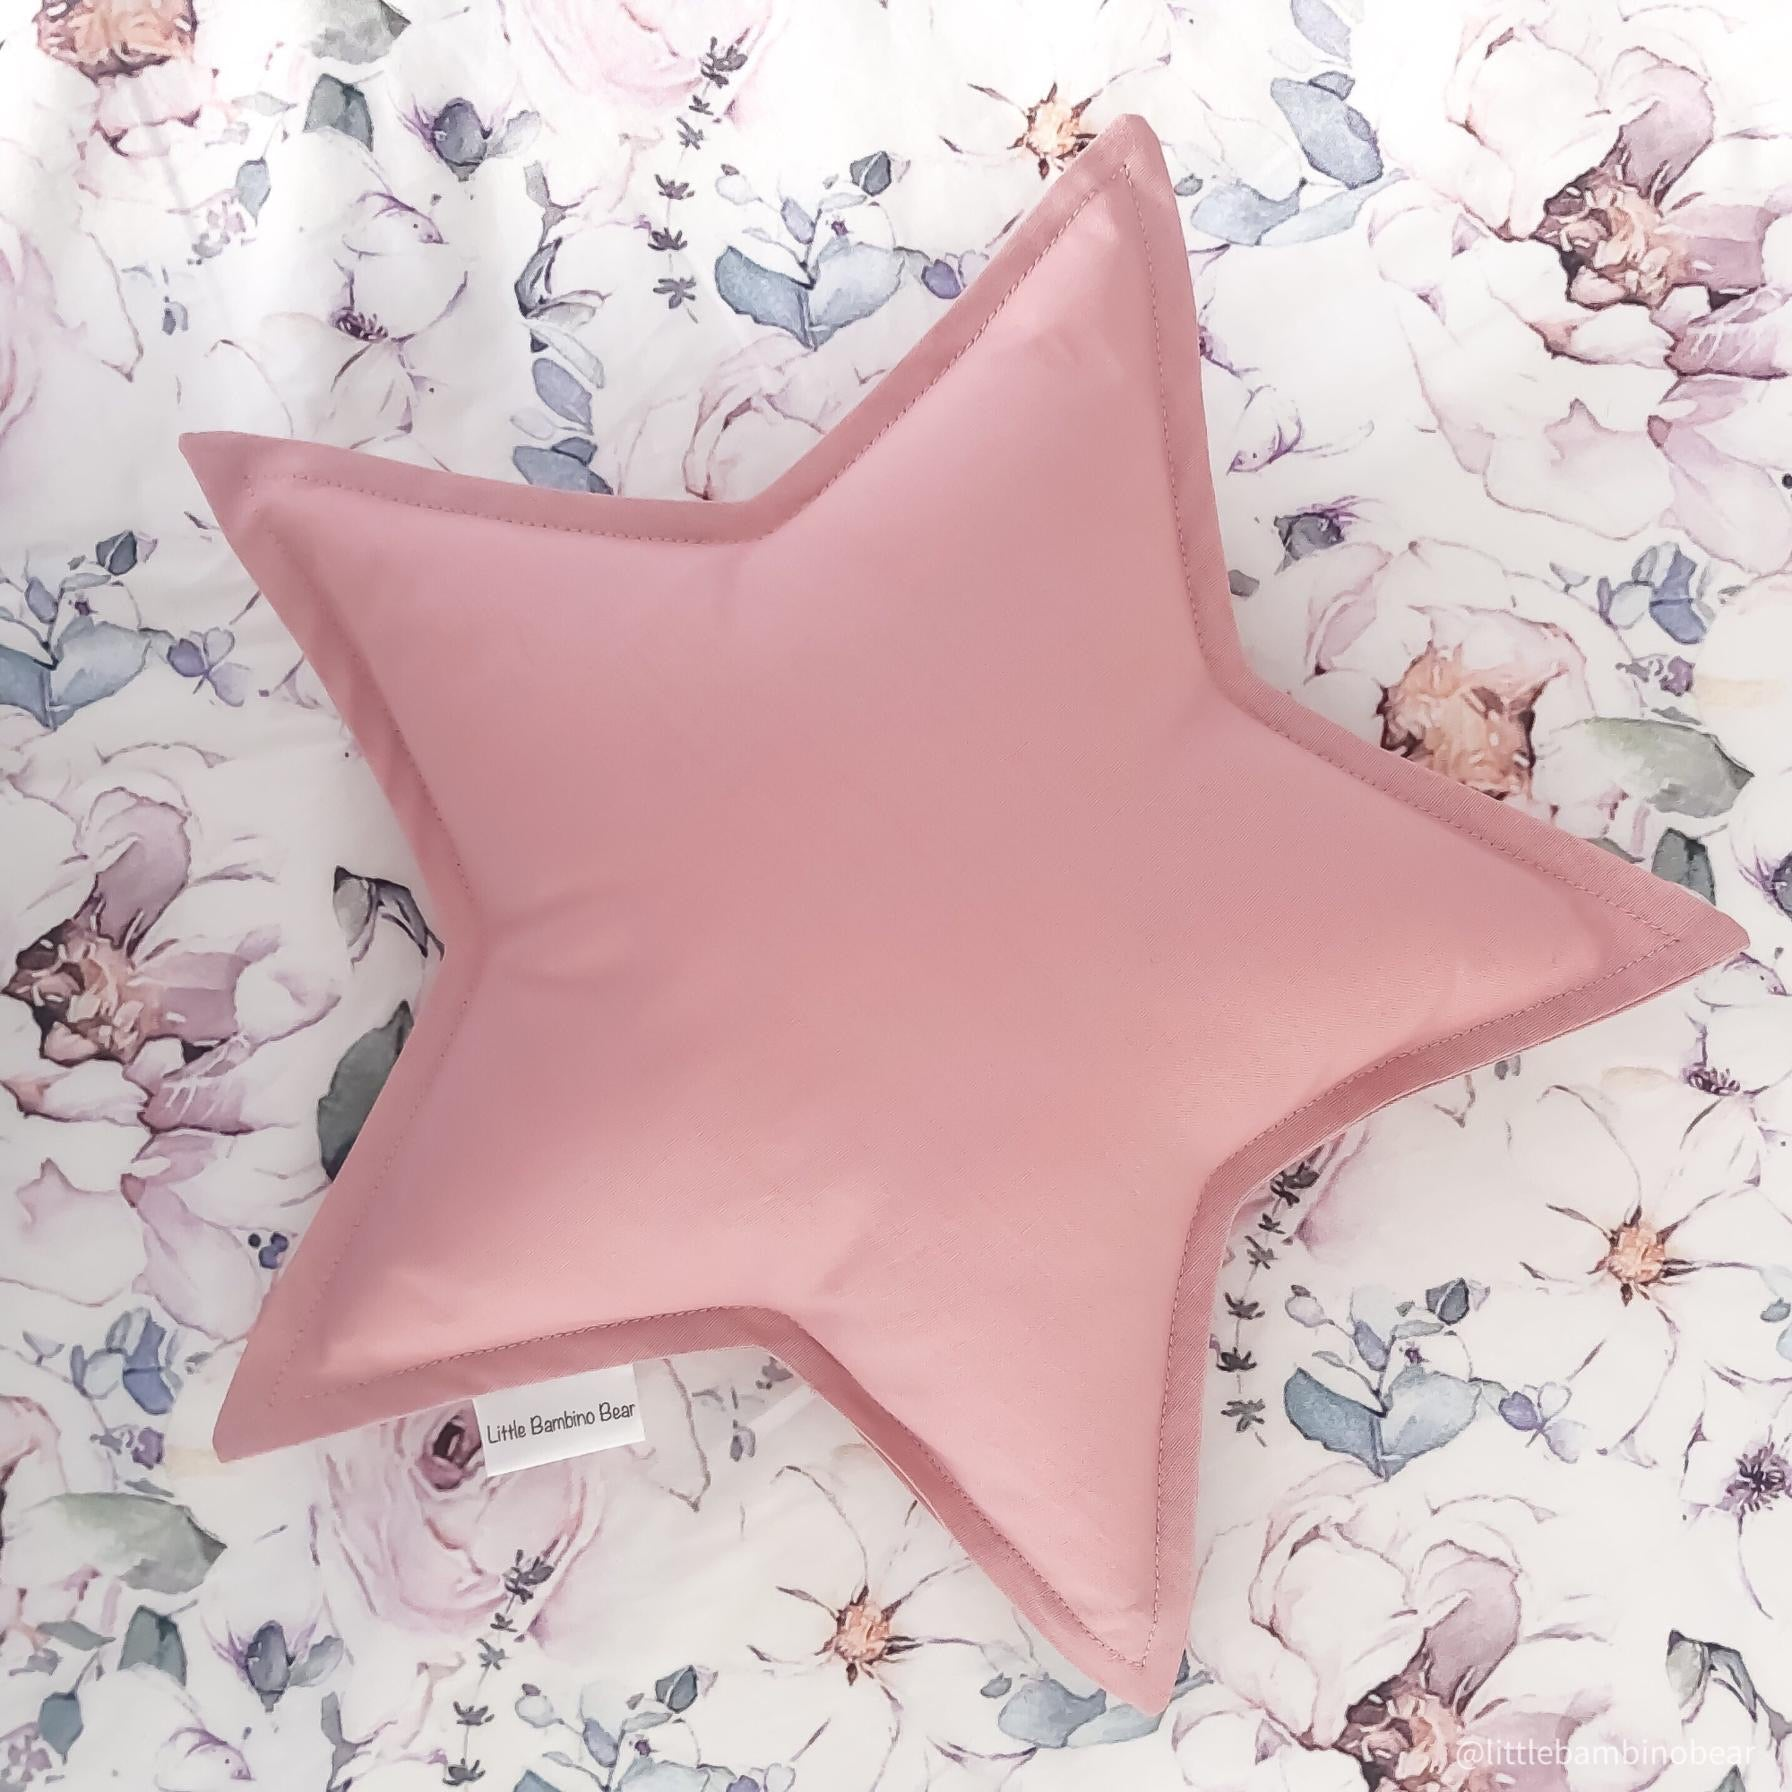 Dusty Pink Star Cushion - Little Bambino Bear